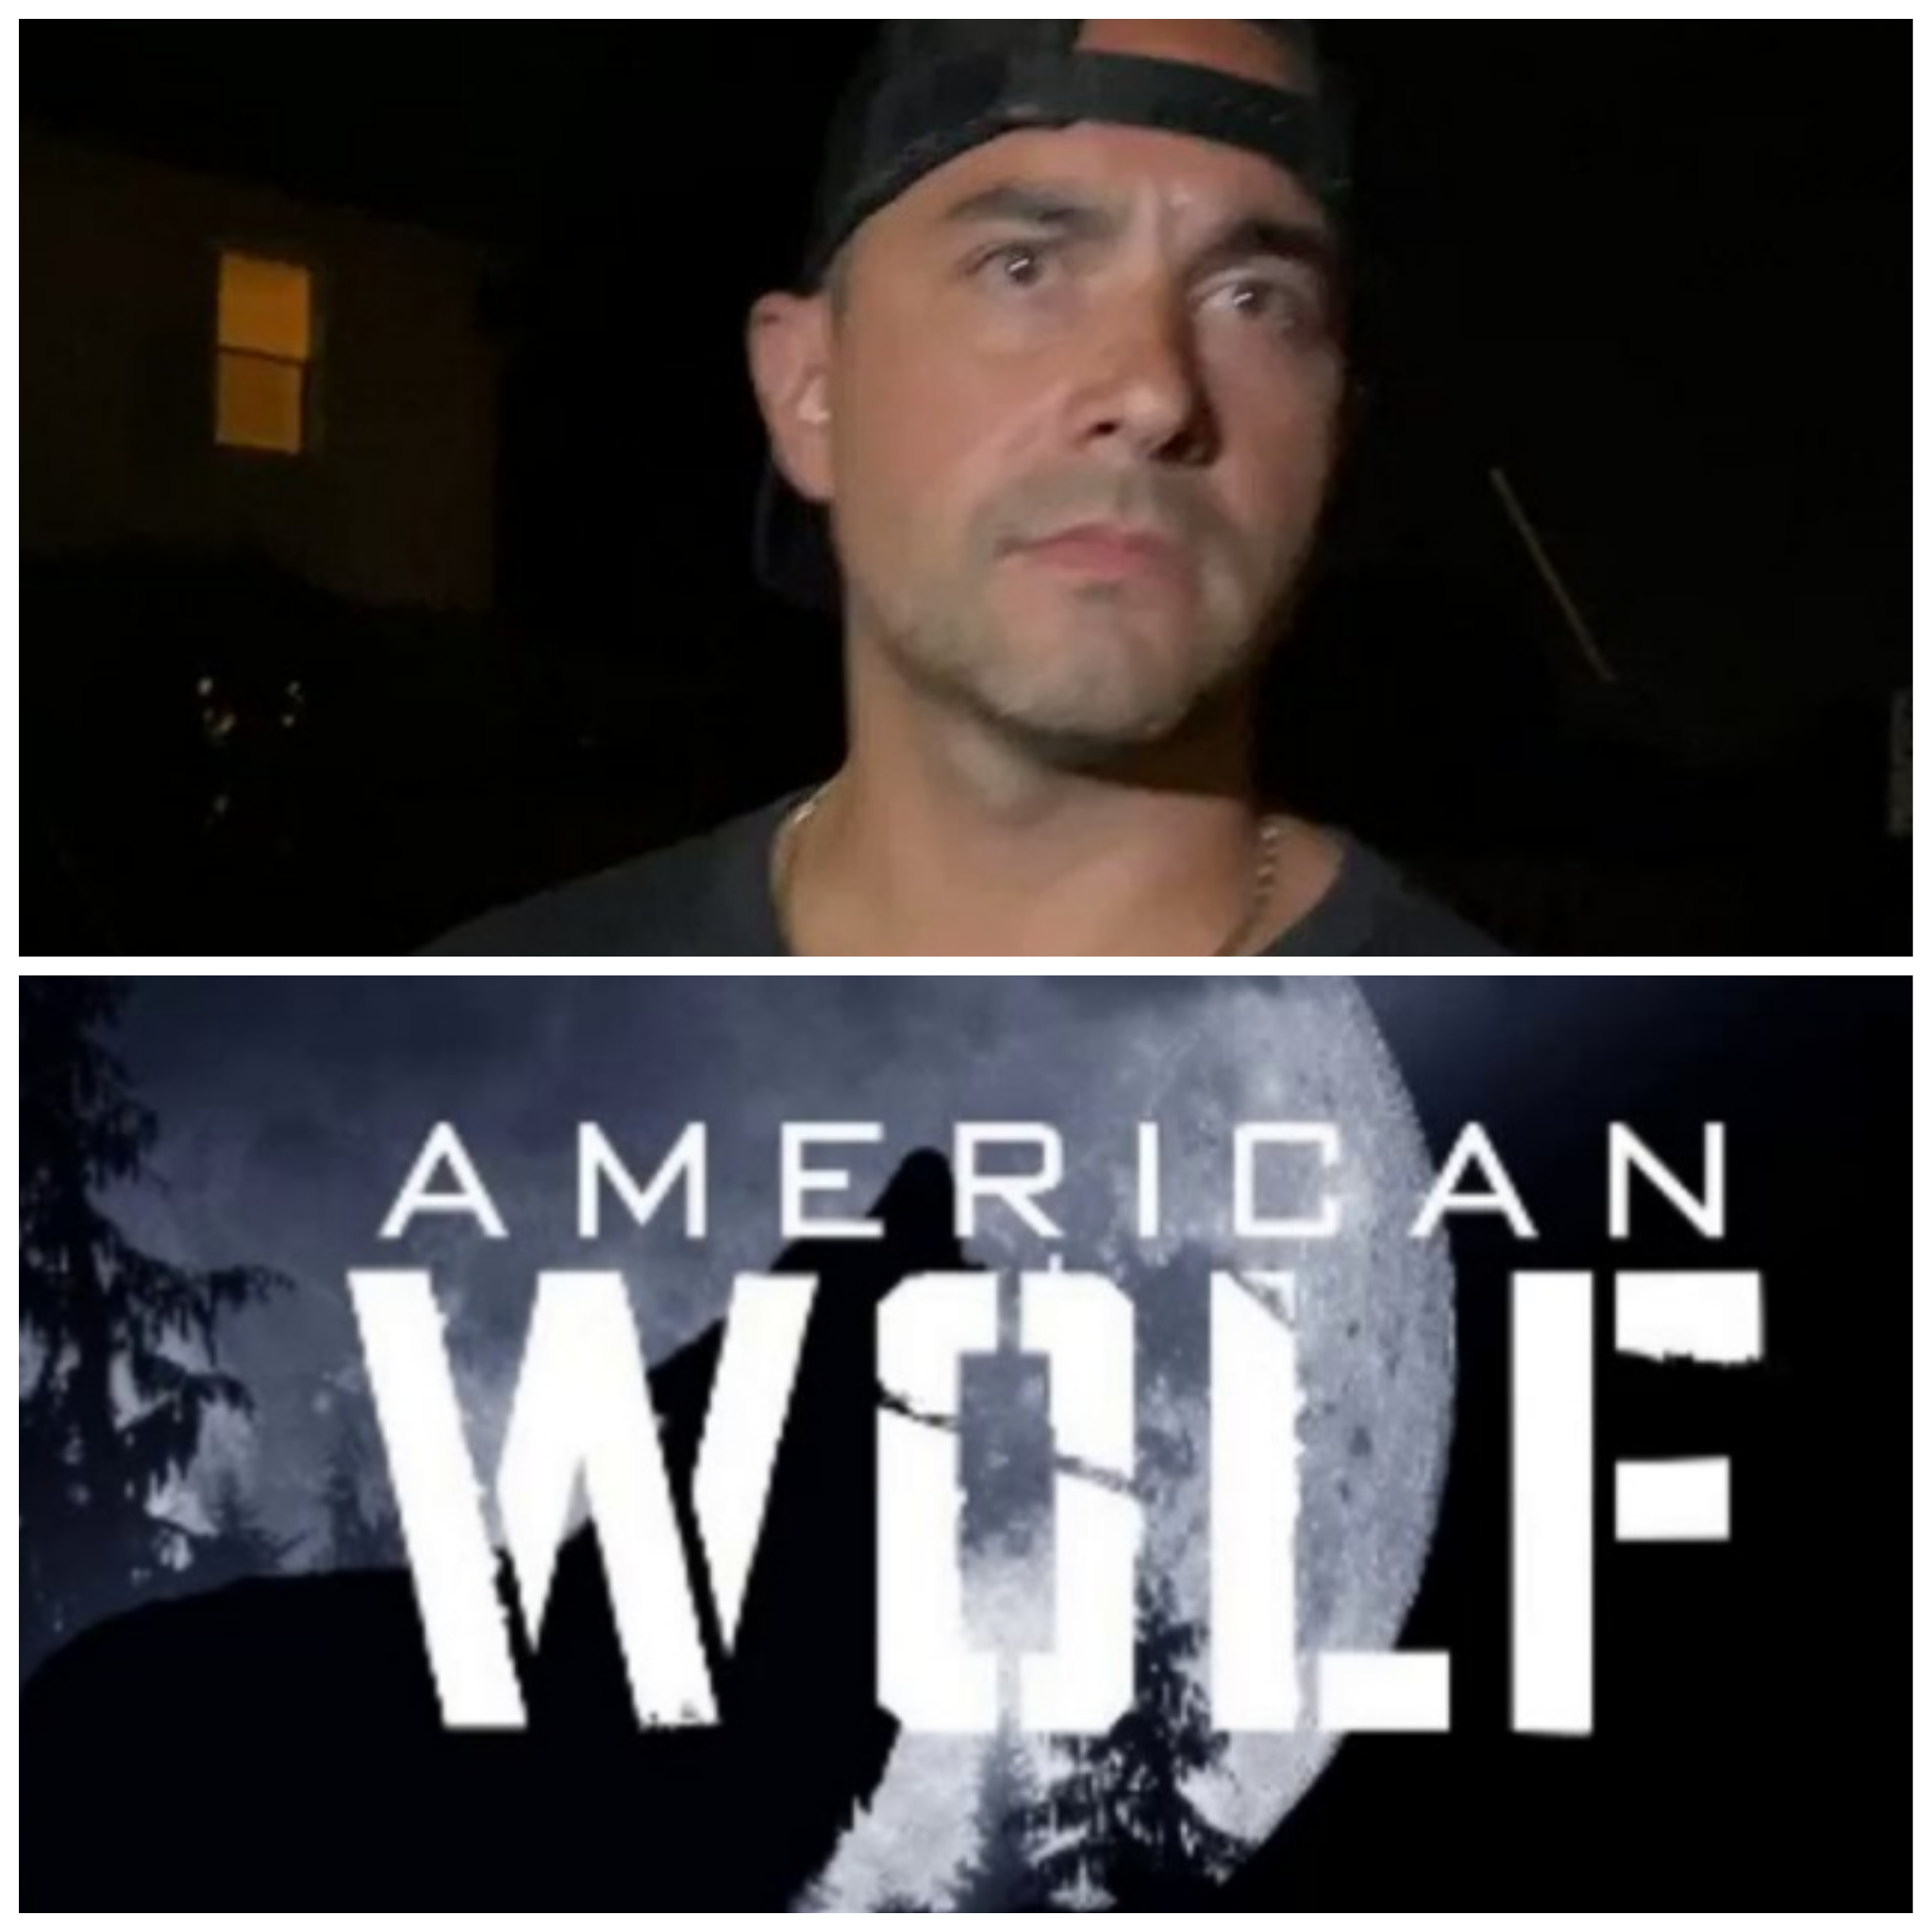 Who is 'American Wolf'?